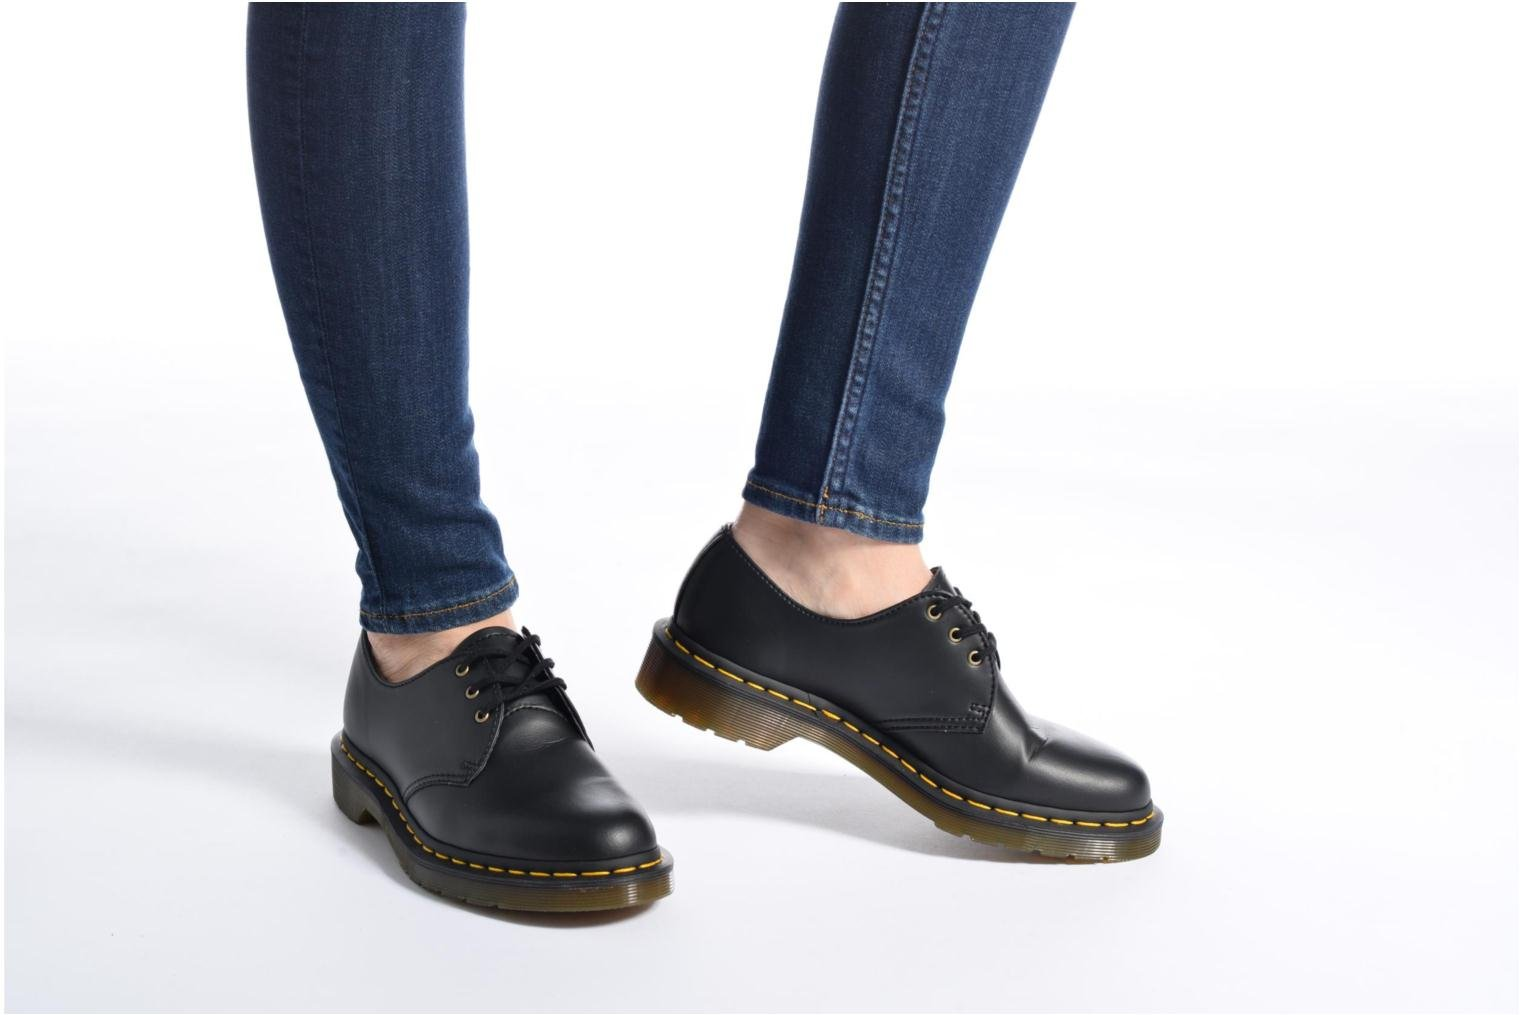 Vegan 1461 Black